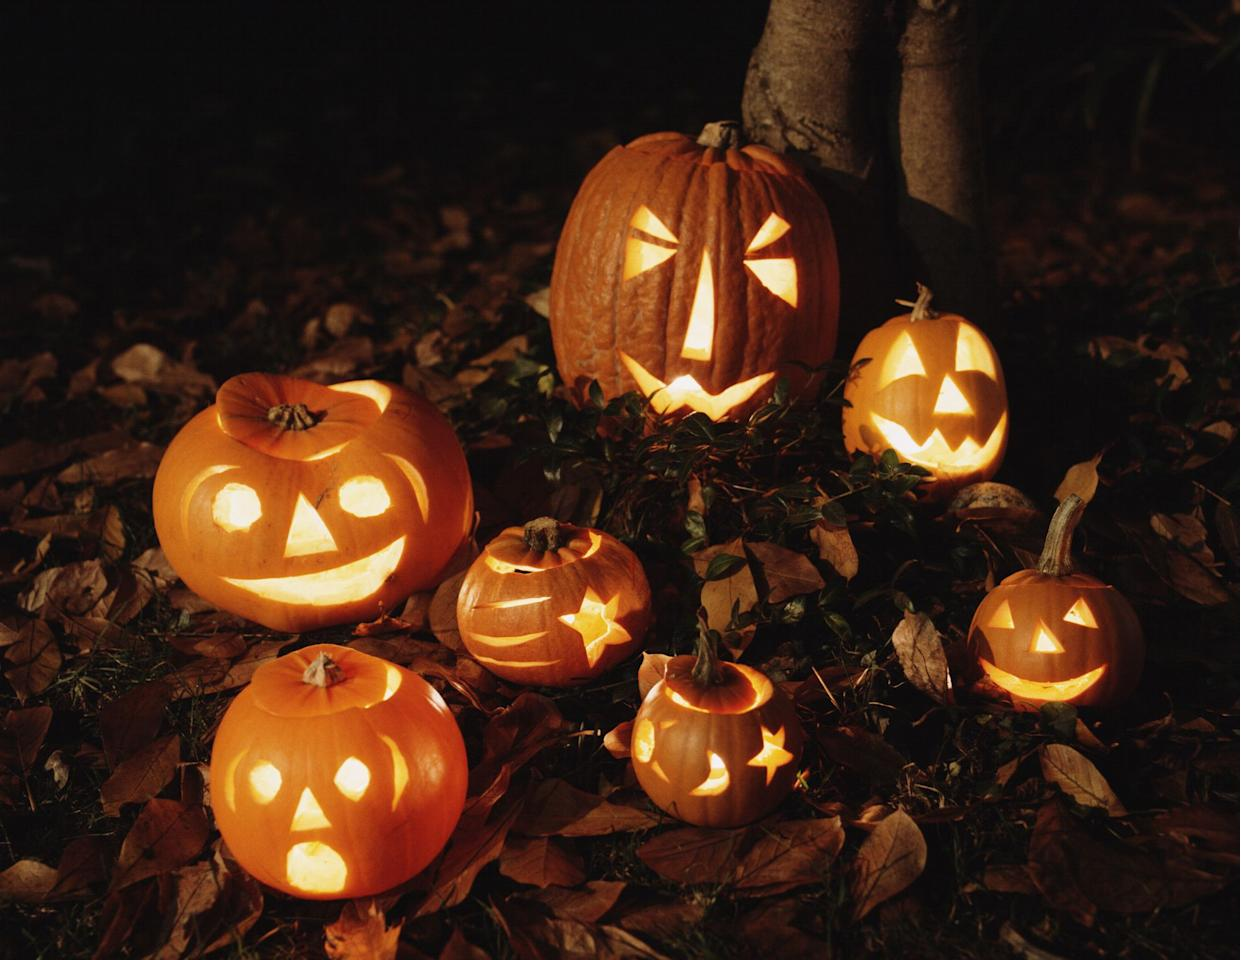 """<p>Halloween may look a little different this year, but no matter what your plans are, you can still get in a festive and spooky mood with a good ole rousing game of Halloween trivia with your family or Zoom trivia night with your friends. Don't forget to include your favorite <a href=""""https://www.countryliving.com/food-drinks/g1029/halloween-treats-for-kids/"""" target=""""_blank"""">Halloween treats</a>, and of course you'll have to wear your <a href=""""https://www.countryliving.com/diy-crafts/g4571/diy-halloween-costumes-for-women/"""" target=""""_blank"""">best costume</a> for the occasion. (No time for a <a href=""""https://www.countryliving.com/diy-crafts/g23785711/last-minute-halloween-costumes/"""" target=""""_blank"""">last-minute Halloween costume</a>? A funny <a href=""""https://www.countryliving.com/shopping/g32908775/coronavirus-halloween-fabric-face-mask/"""" target=""""_blank"""">Halloween coronavirus face mask</a> will do!)</p><p>Test your fellow ghouls and witches to see if they really know whose ghost is said to haunt the halls of The White House, or where we got the idea for trick-or-treating and <a href=""""https://www.countryliving.com/diy-crafts/g279/pumpkin-carving-ideas/"""" target=""""_blank"""">pumpkin carving</a>. Impress your friends with your knowledge of Halloween candy and which states have banned certain costumes. You'll want to keep the fun going by reciting your favorite <a href=""""https://www.countryliving.com/life/entertainment/g22144934/witch-quotes/"""" target=""""_blank"""">witch</a> and <a href=""""https://www.countryliving.com/life/g28452084/vampire-quotes/"""" target=""""_blank"""">vampire quotes</a> and resurrect the Sanderson sisters with a post-trivia <a href=""""https://www.countryliving.com/life/entertainment/g3624/best-halloween-movies/"""" target=""""_blank"""">Halloween movie</a> night. Maybe even tell some of your best <a href=""""https://www.countryliving.com/entertaining/a32963261/halloween-jokes/"""" target=""""_blank"""">Halloween jokes</a>. Keep the competitive spirit going with a pumpkin carving contest.  And f"""